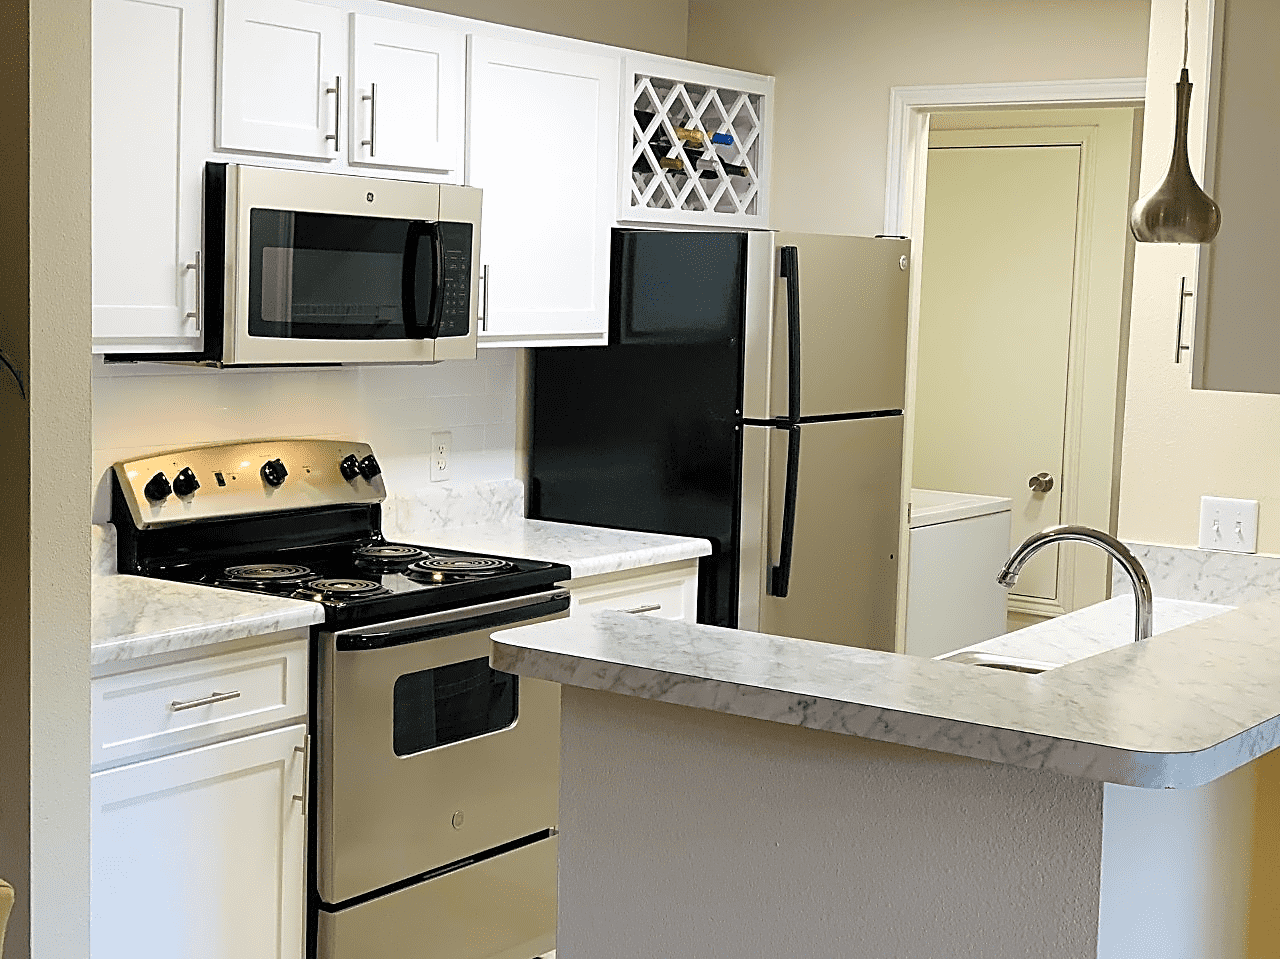 Apartments Near UWF Kings Mill for University of West Florida Students in Pensacola, FL